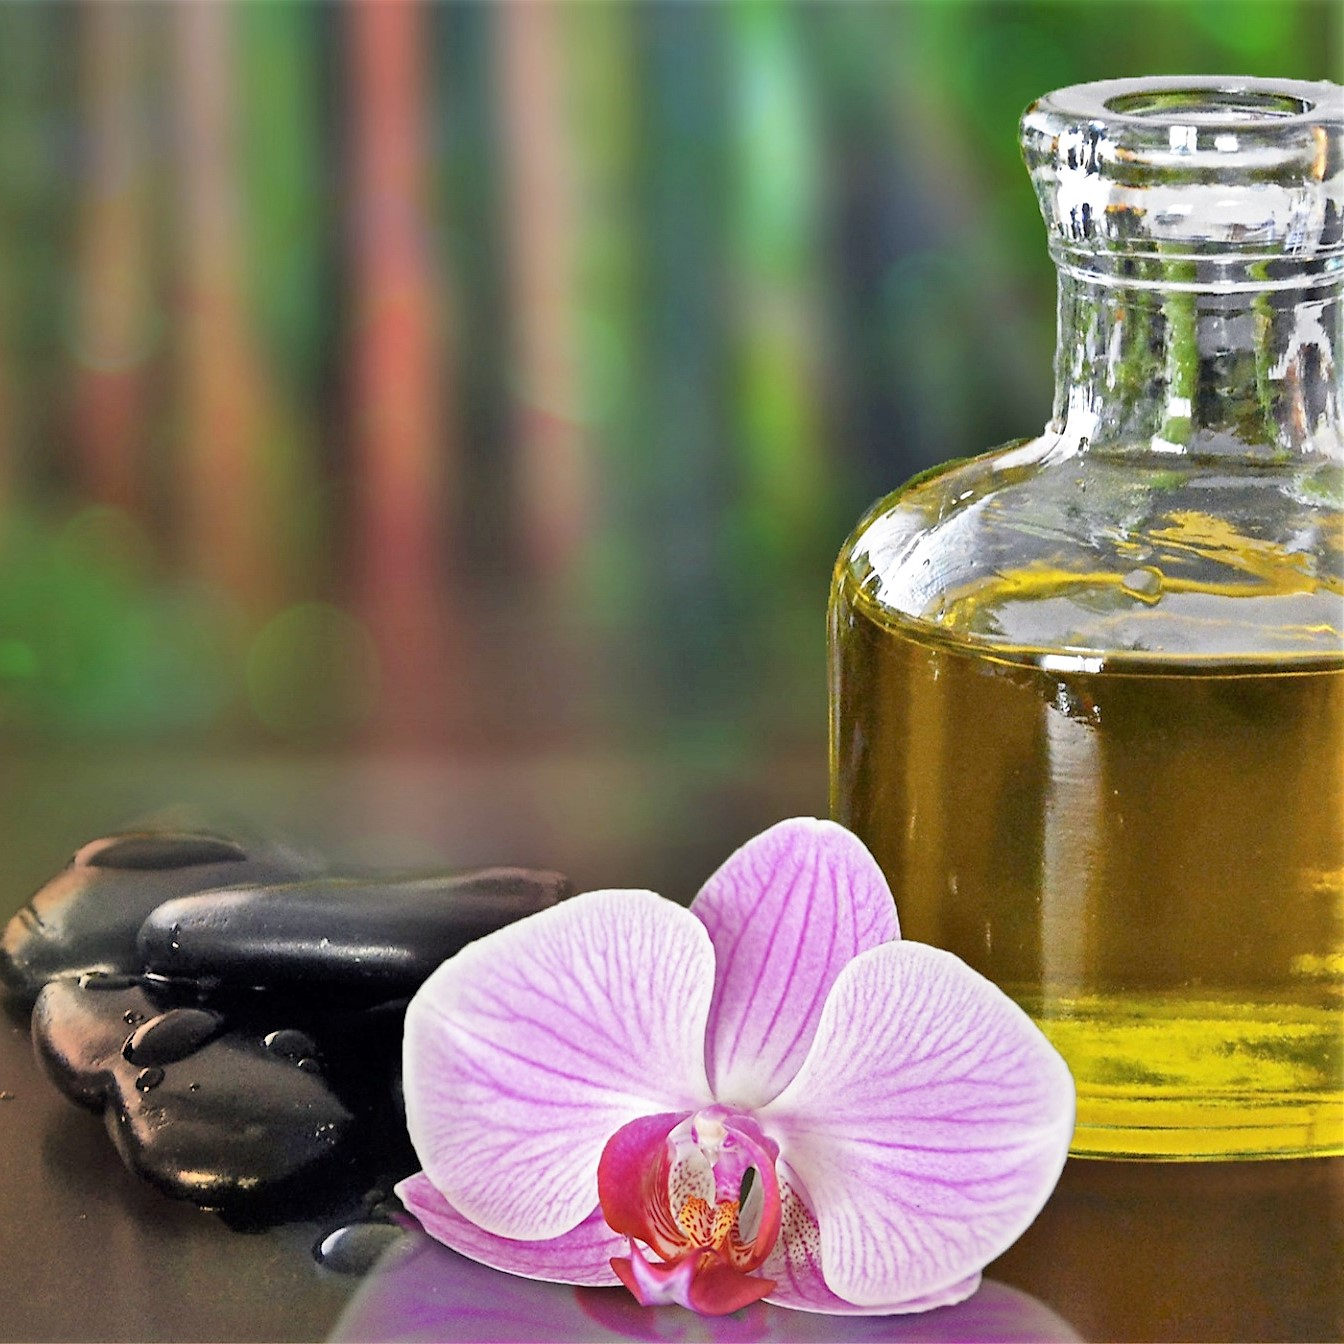 Ayurveda certification enhance your personal and professional life ayurveda oil 1betcityfo Image collections